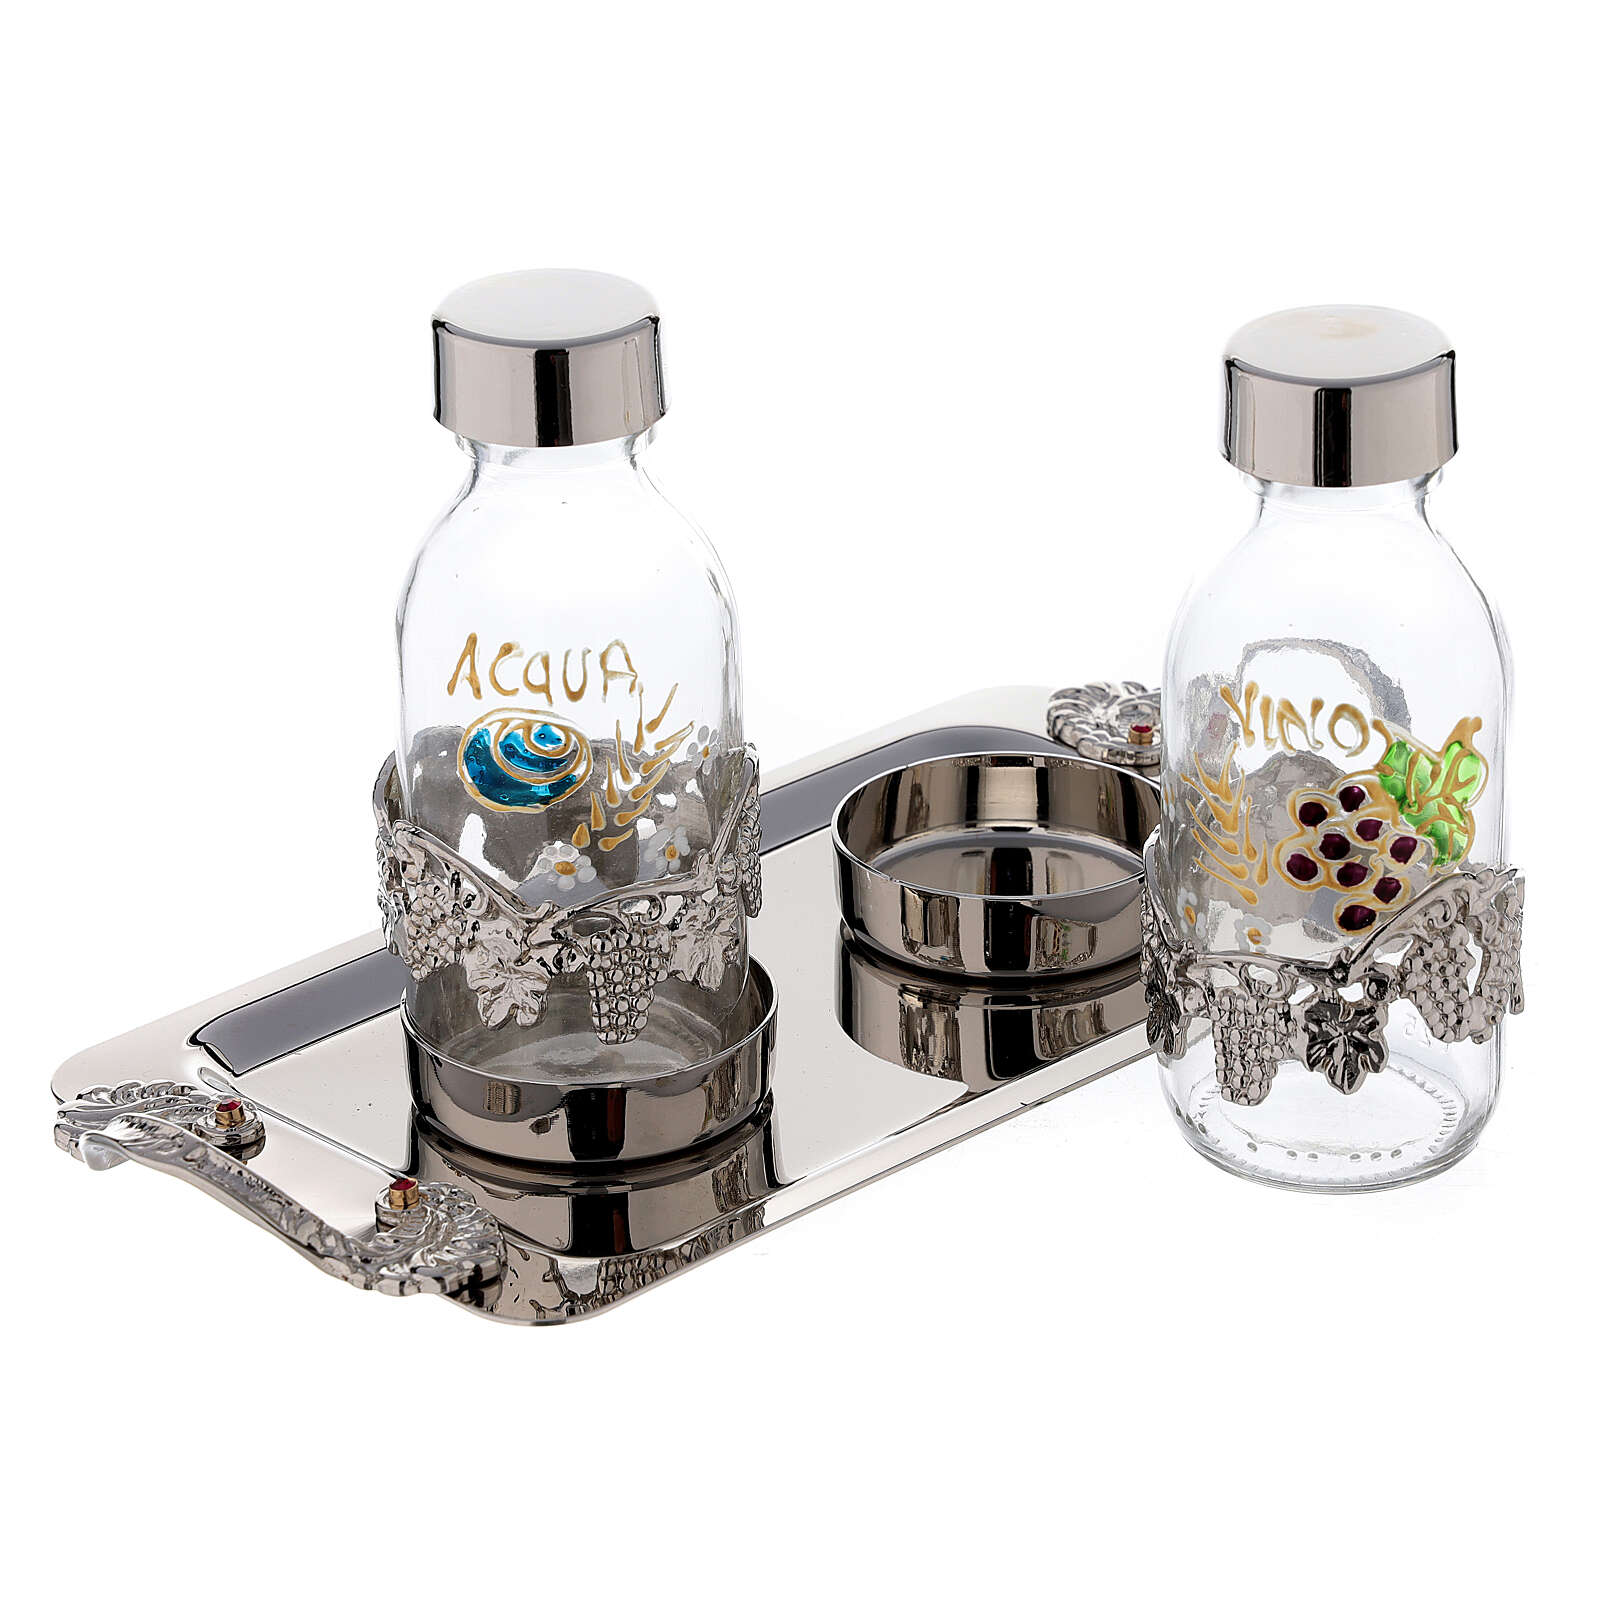 Hand painted cruet set in nickel-plated brass 125 ml grapes and leaves 4